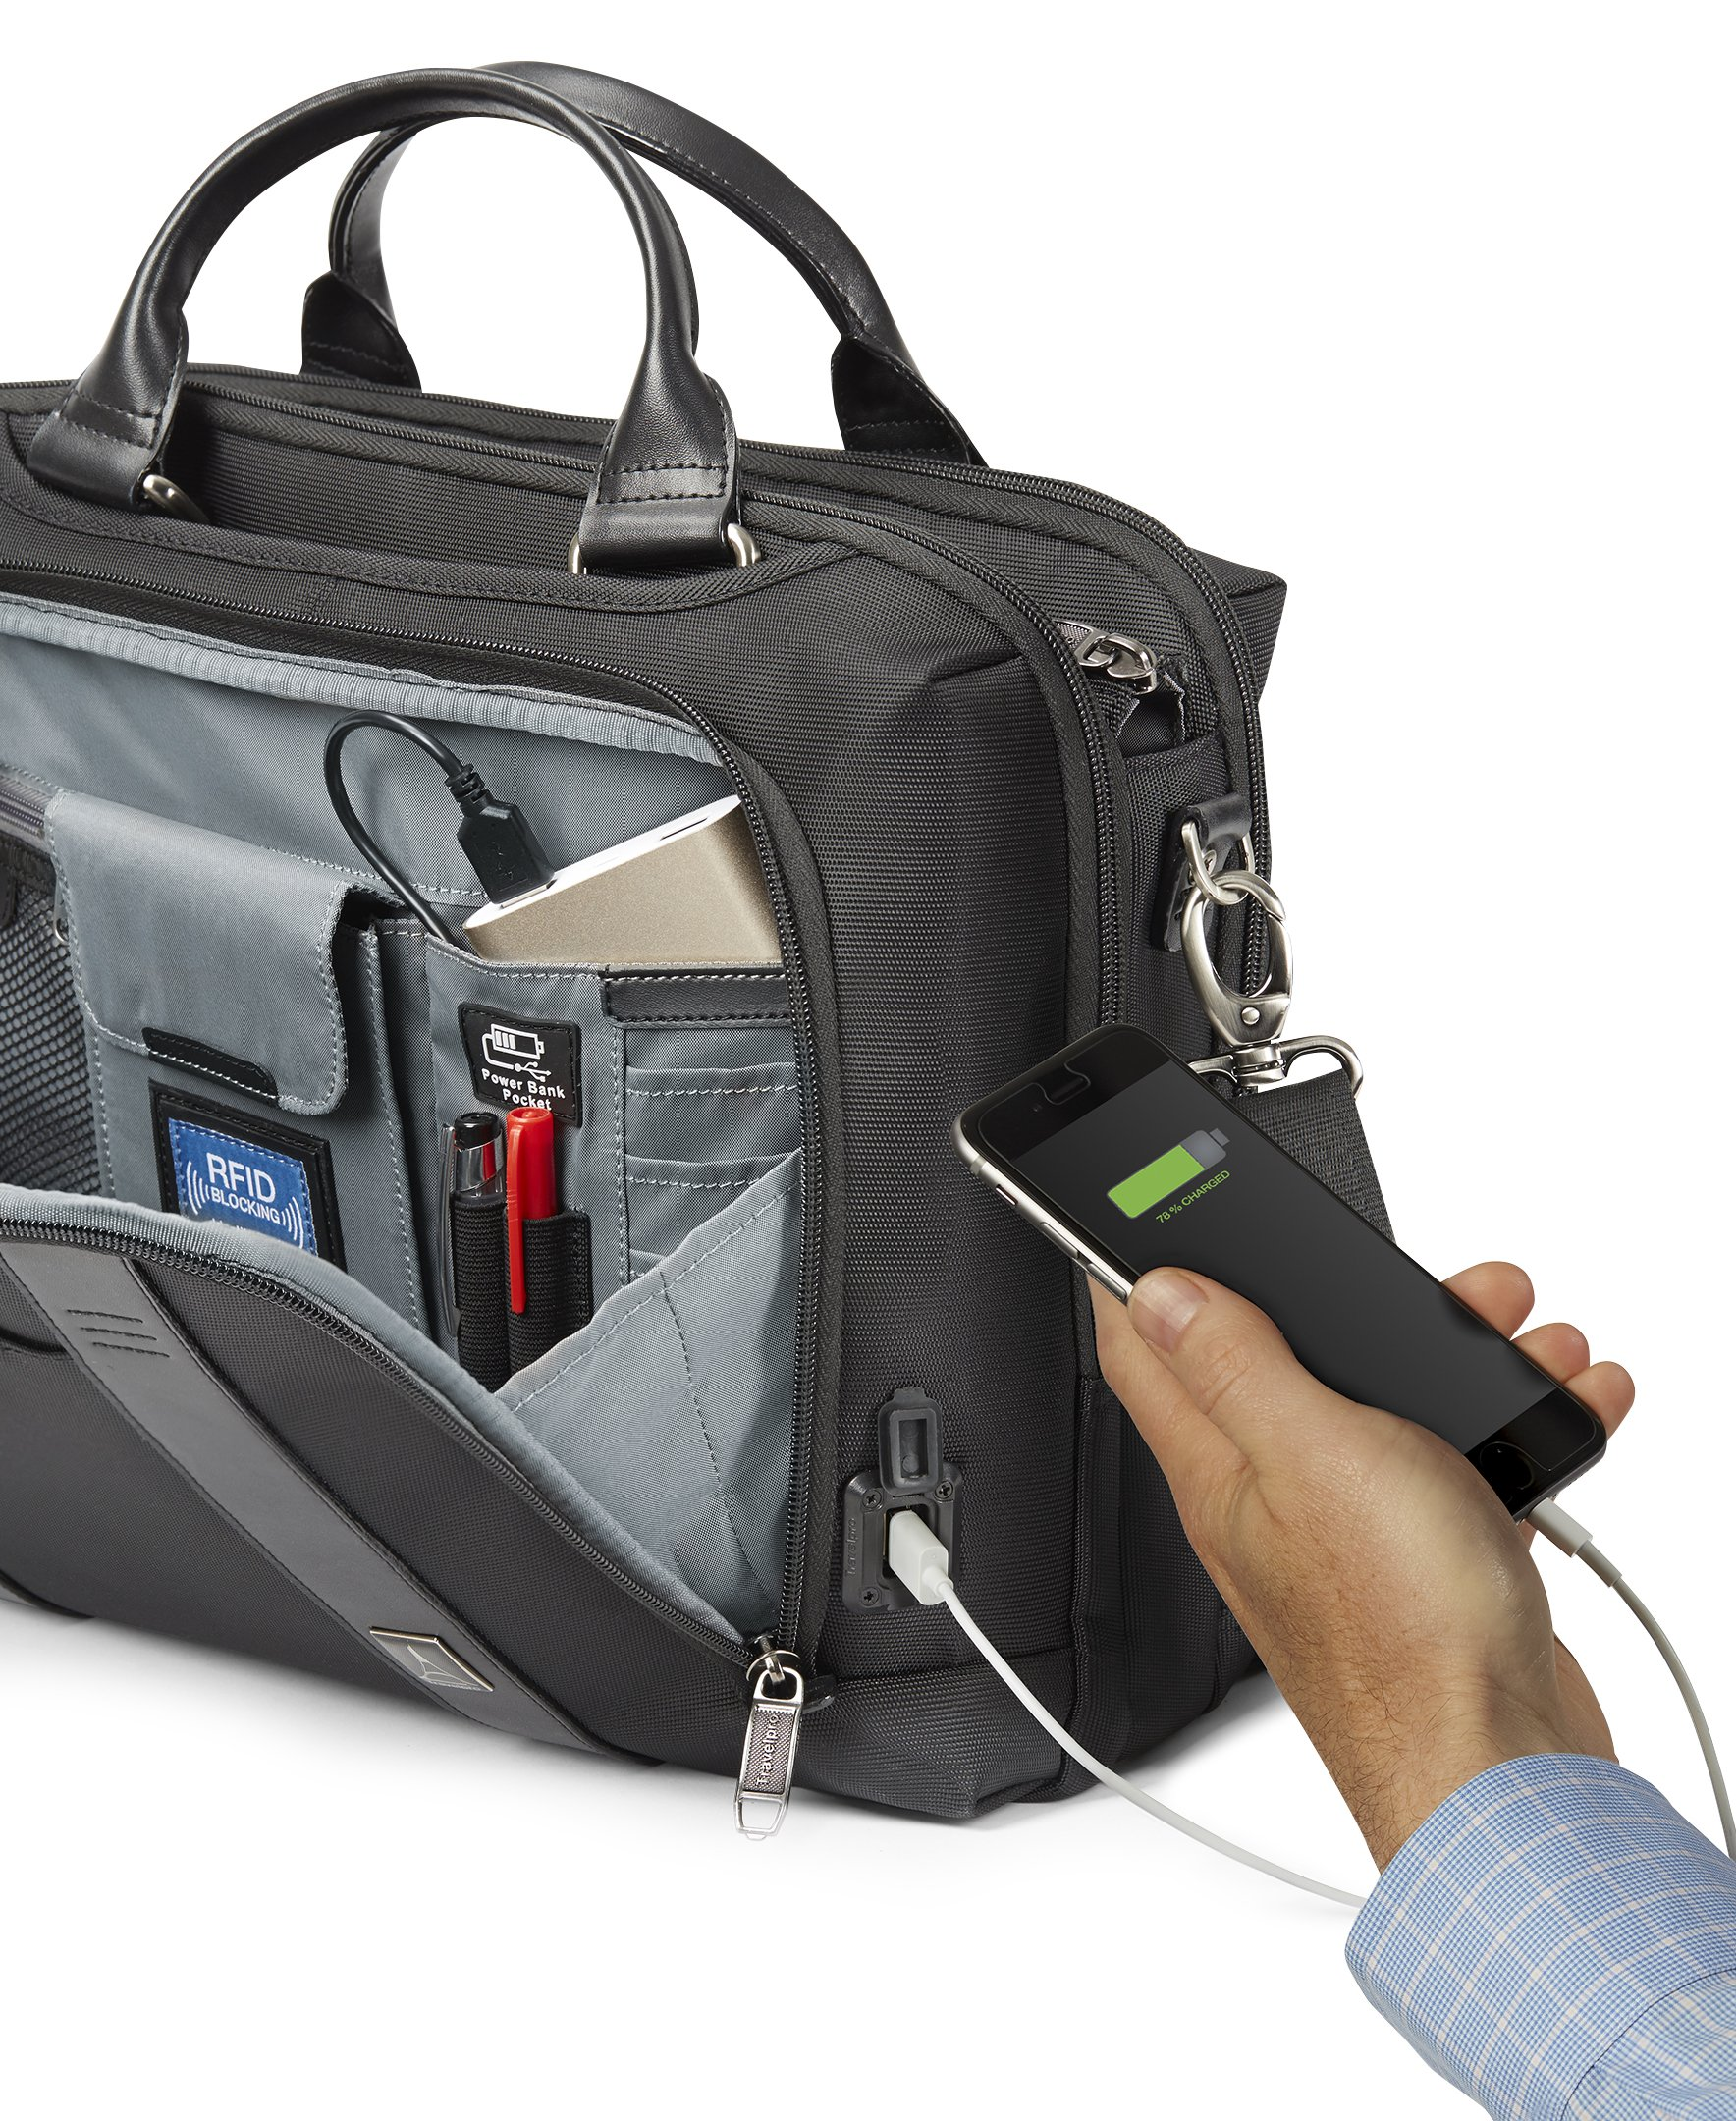 Travelpro Crew Executive Choice 2 Pilot Under-Seat Brief Bag, 16-in with USB port by Travelpro (Image #2)